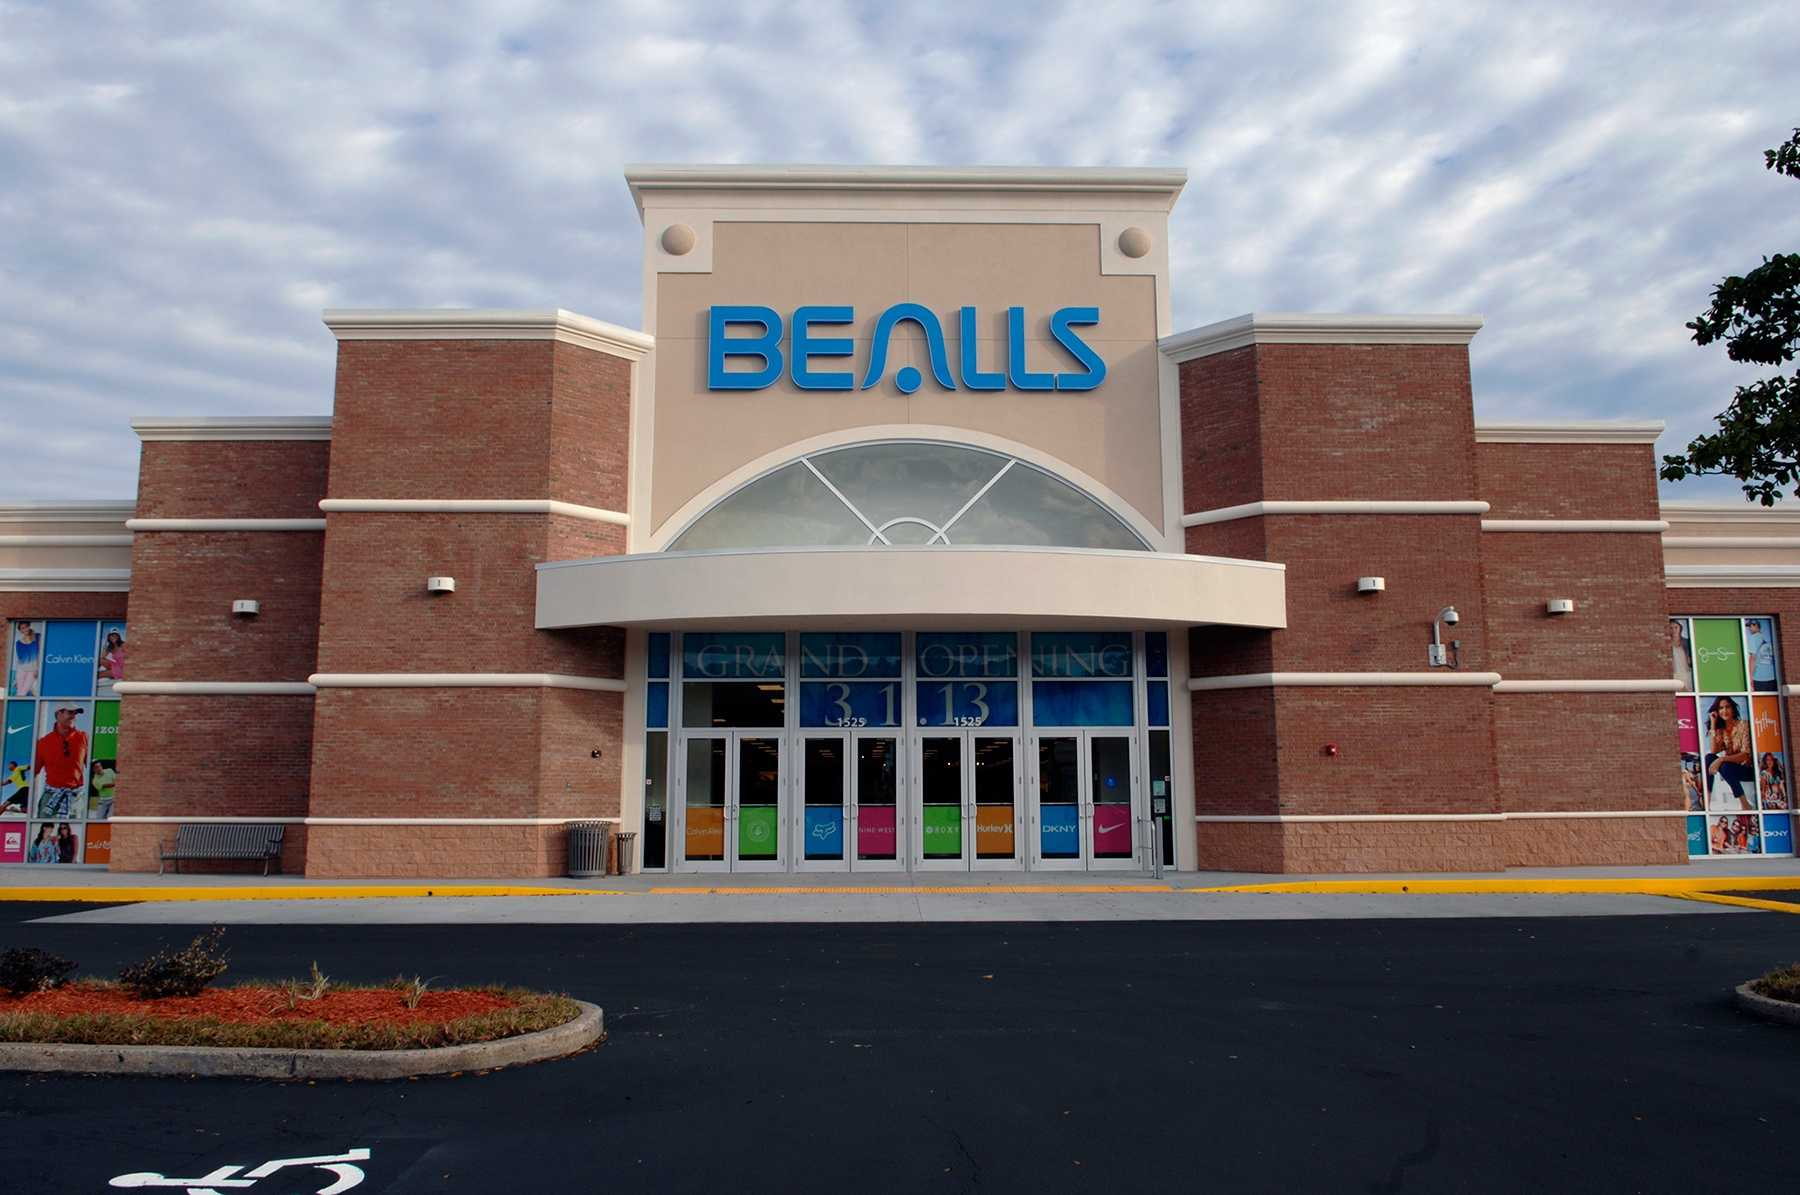 Get directions, reviews and information for Bealls Outlet in North Port, FL.